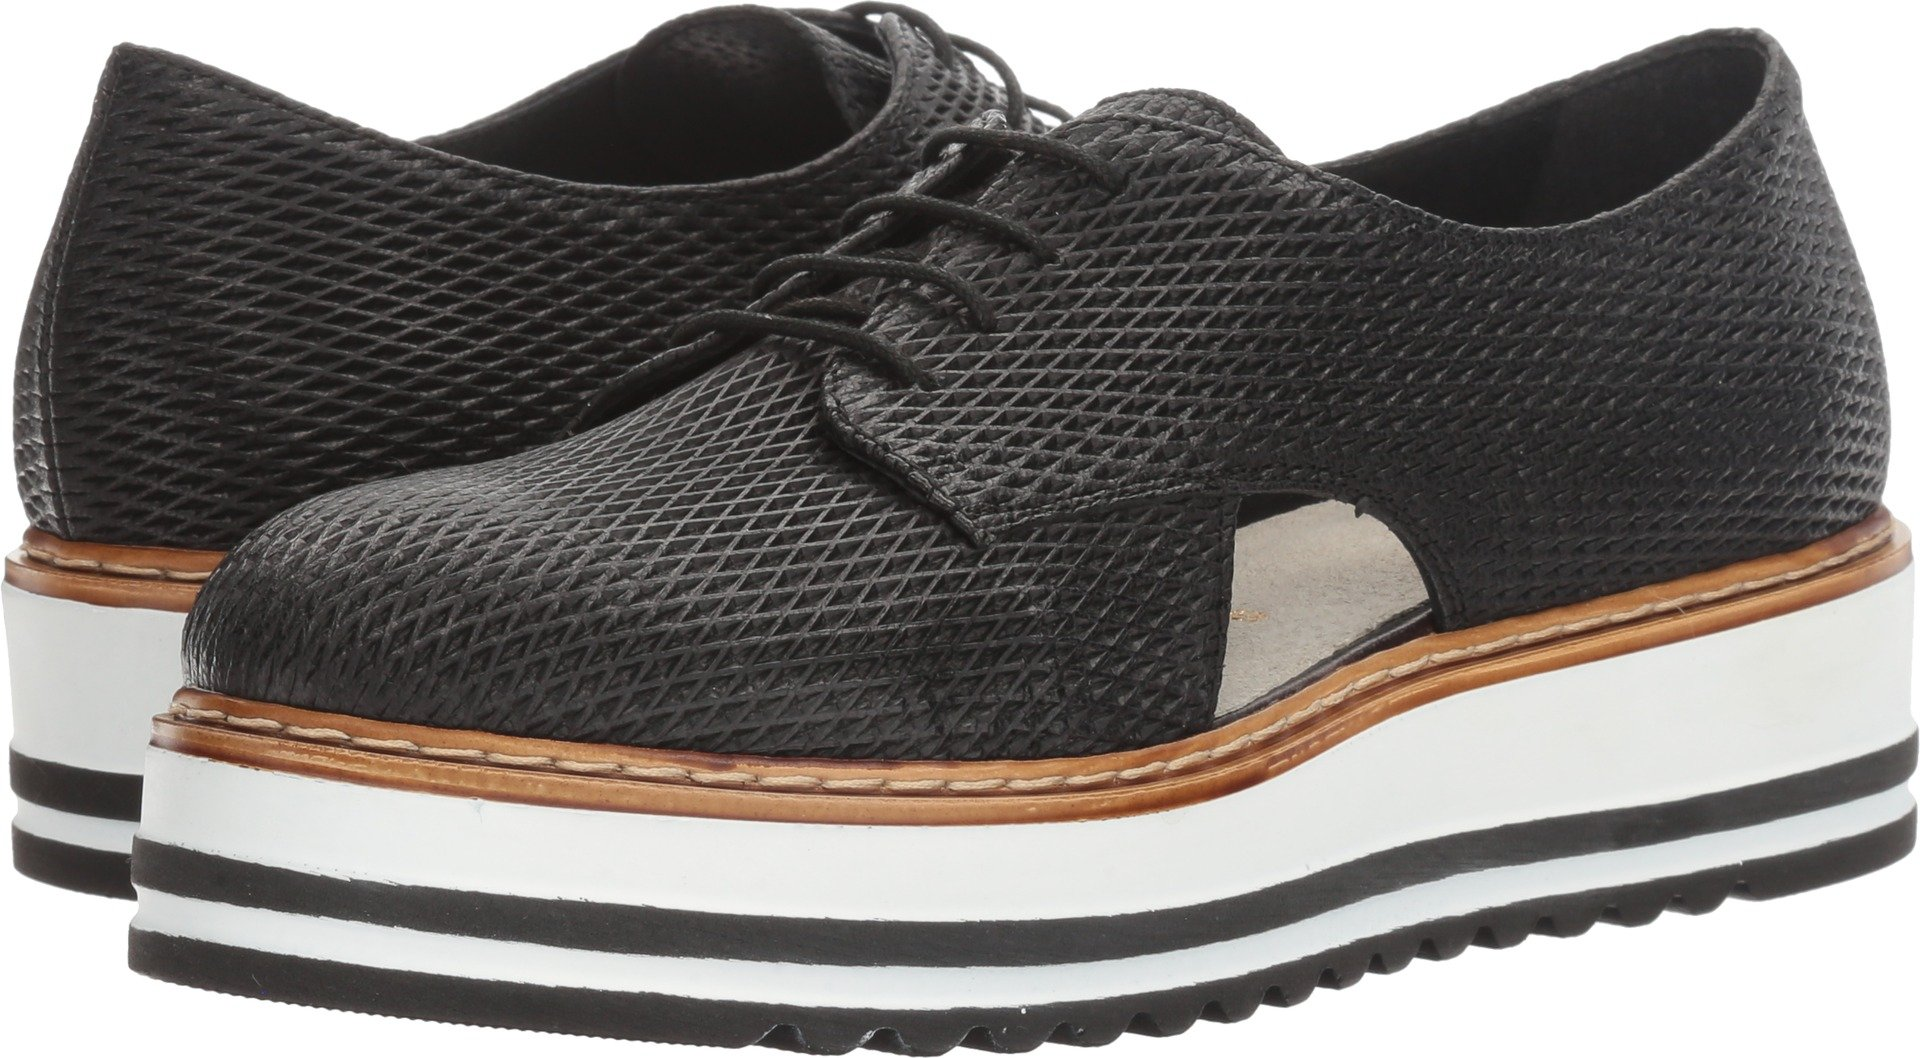 Summit by White Mountain Women's Brody Black Textured Leather 41 M EU by White Mountain